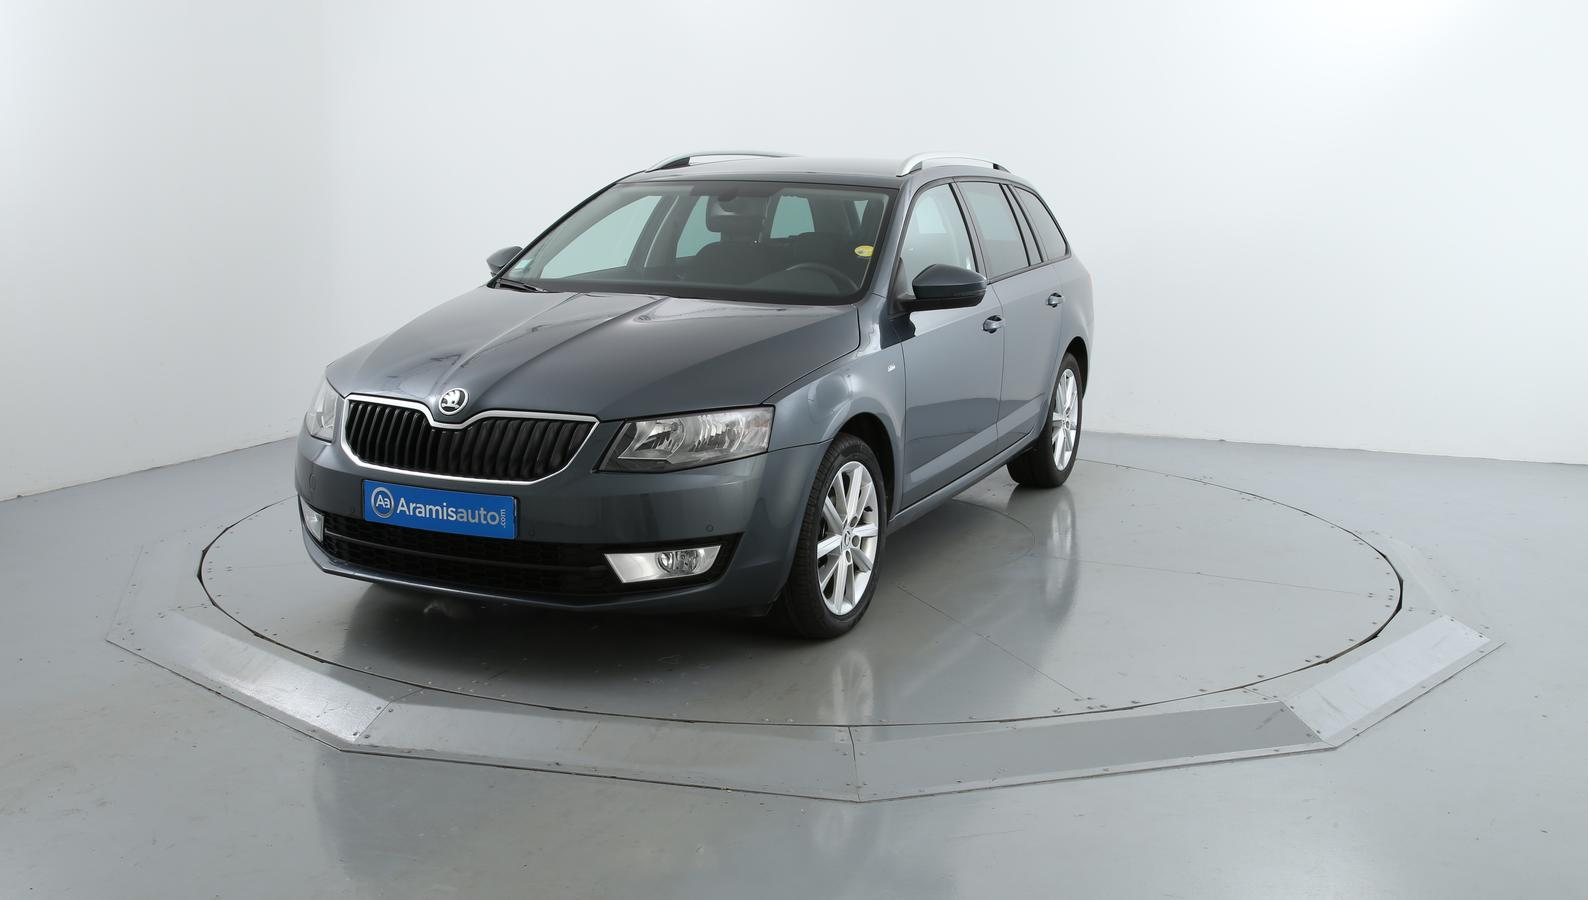 skoda octavia combi break 5 portes diesel 2 0 tdi 150 ch bo te manuelle finition. Black Bedroom Furniture Sets. Home Design Ideas